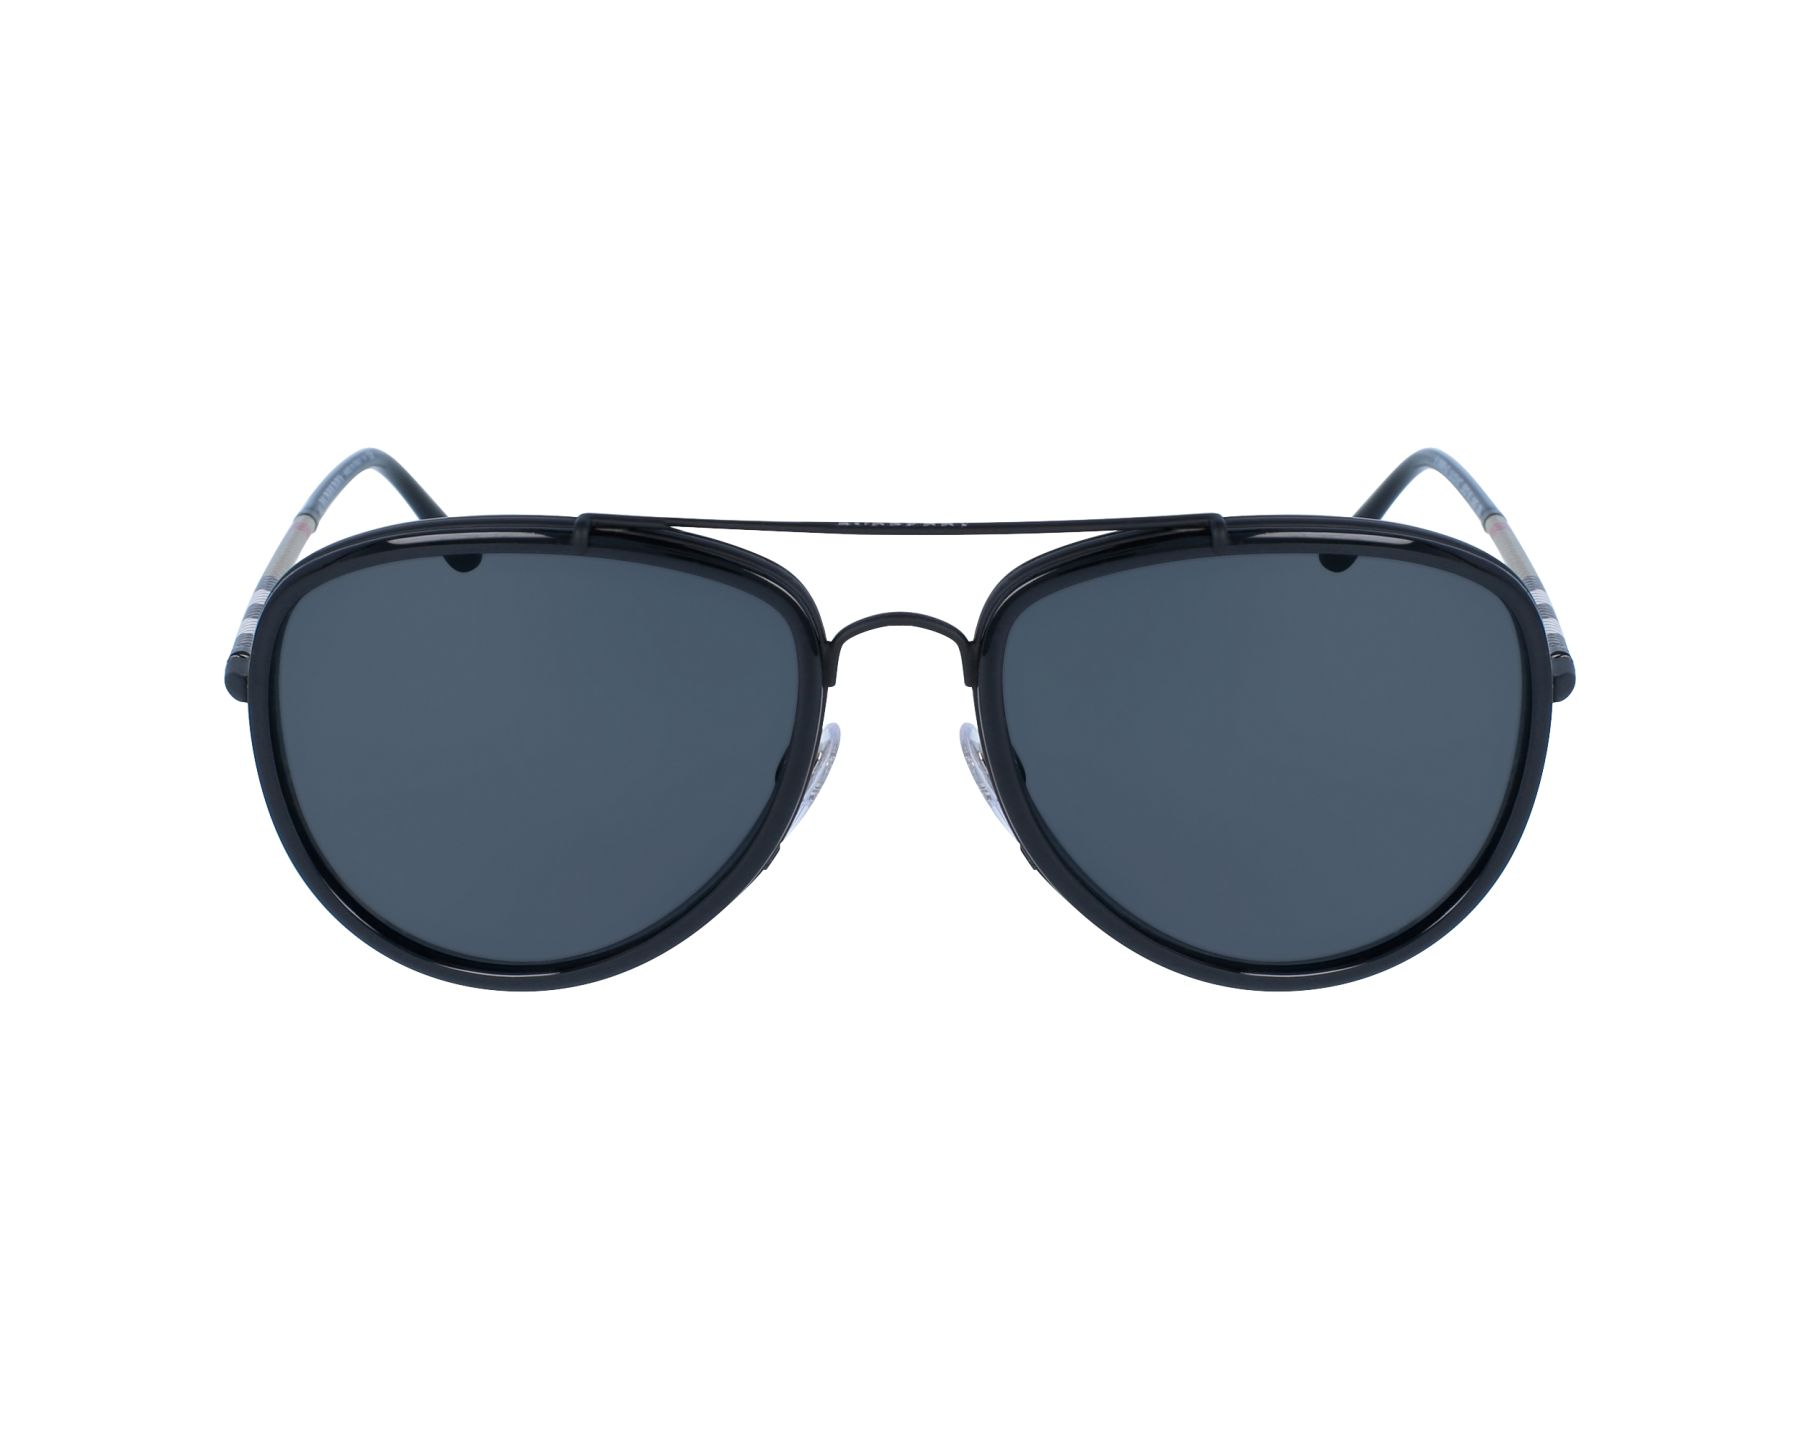 844cb1e1f7e thumbnail Sunglasses Burberry BE-3090-Q 1213 87 - Black Black profile view